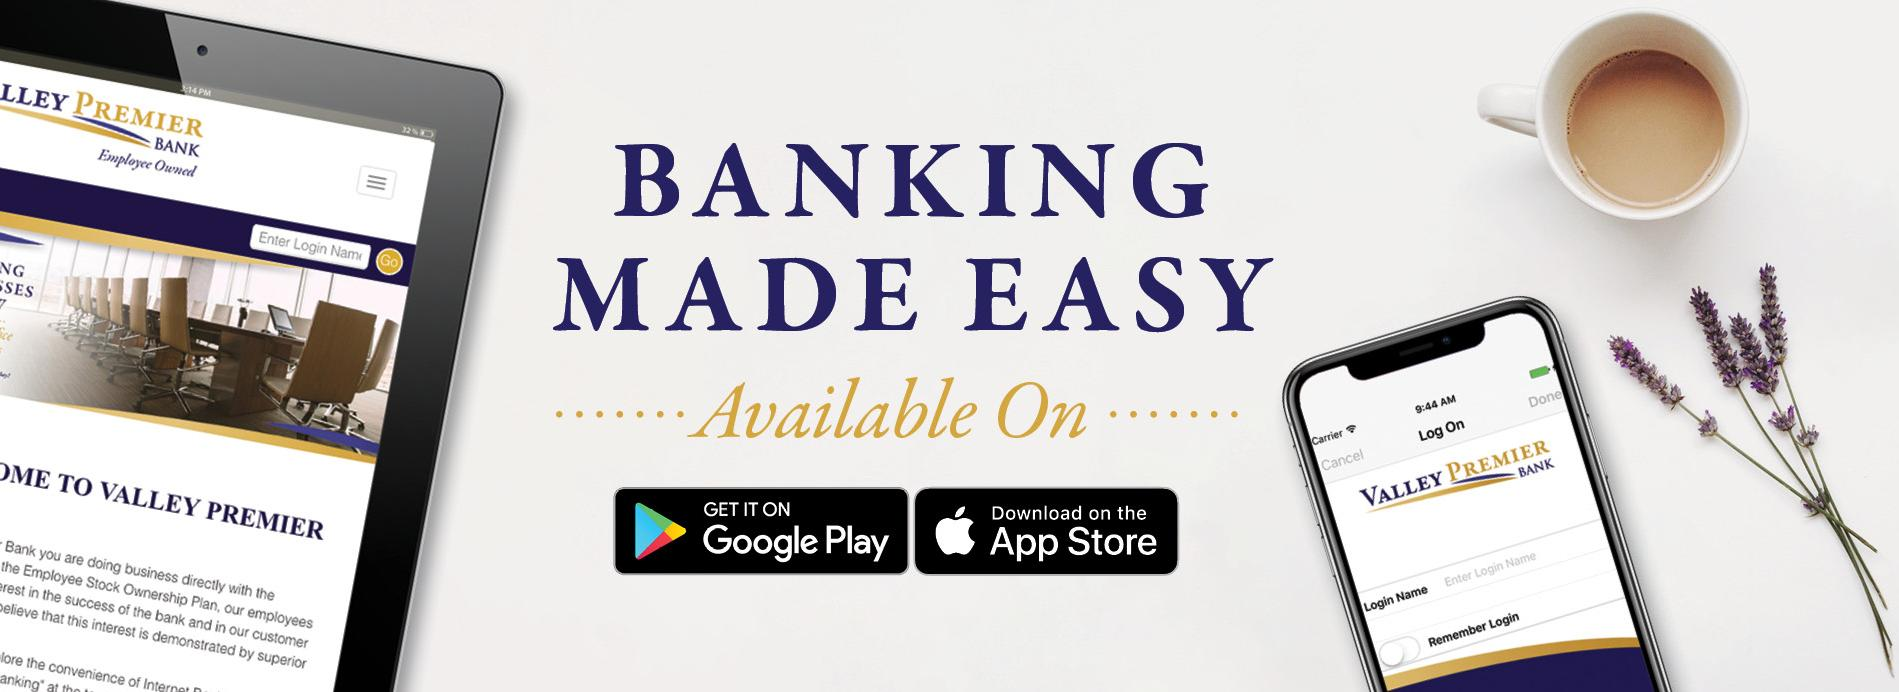 Banking Made Easy with tablet and smartphone images